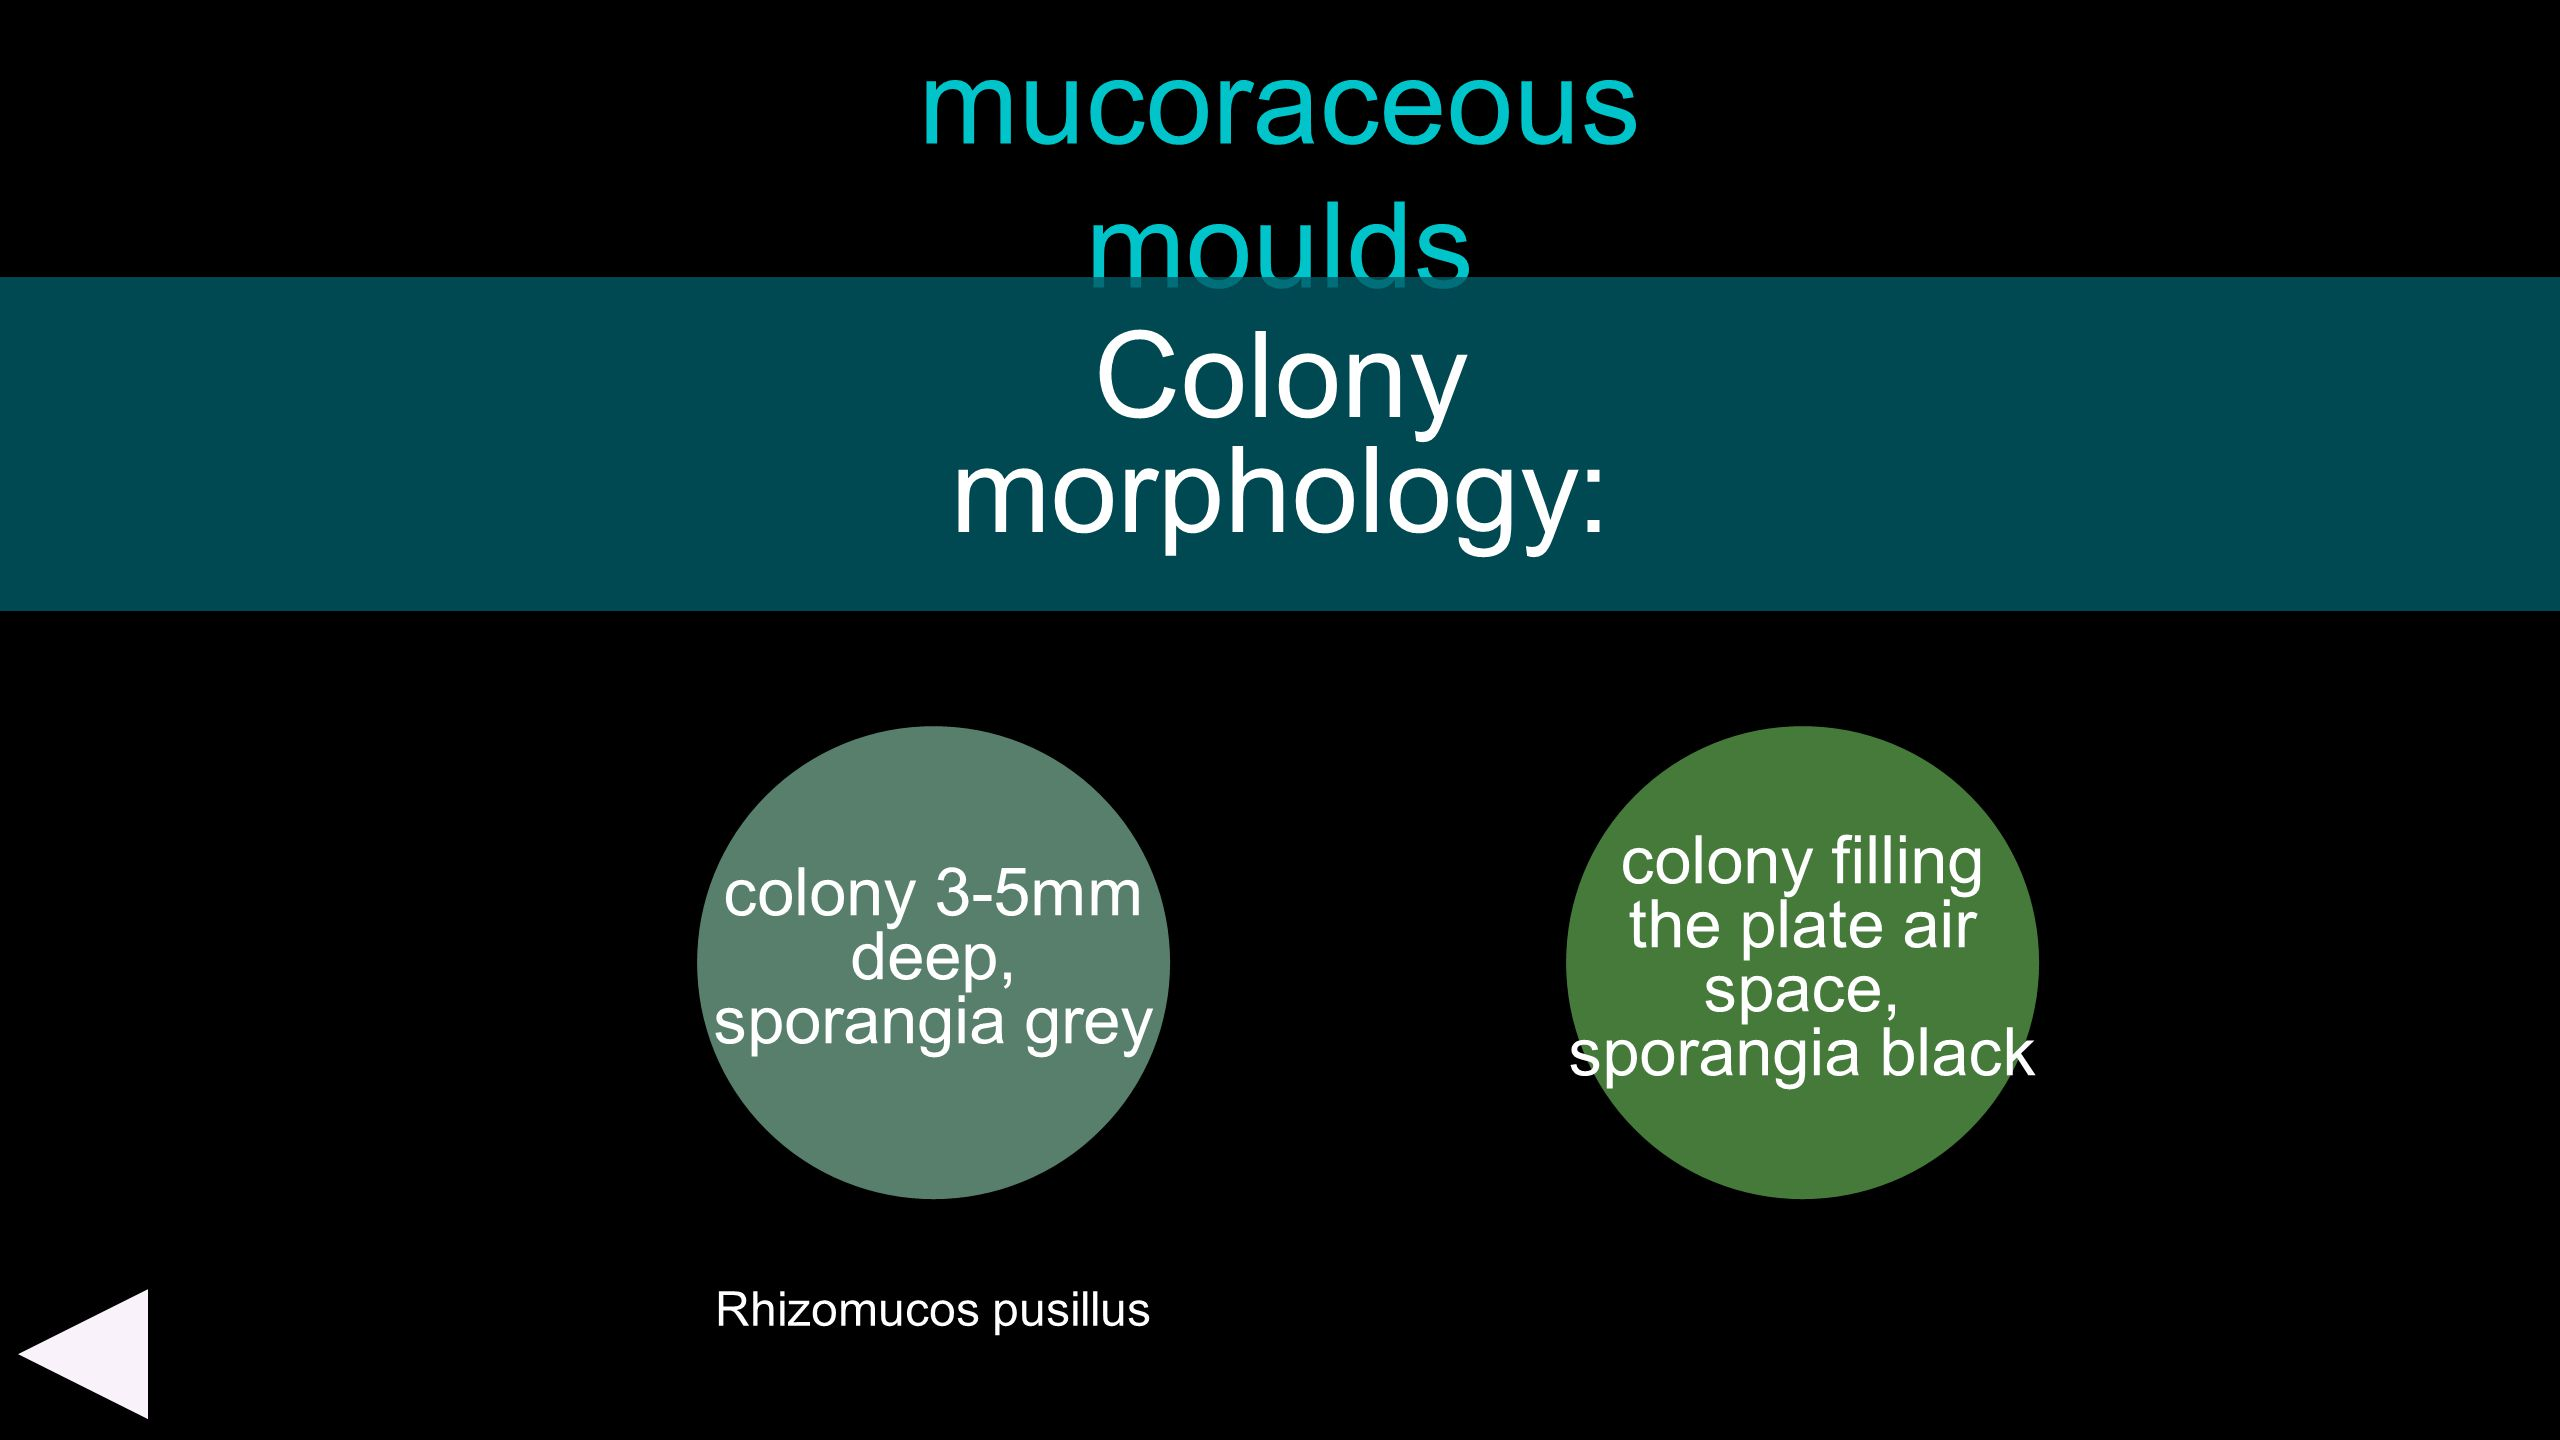 mucoraceous moulds Colony morphology: